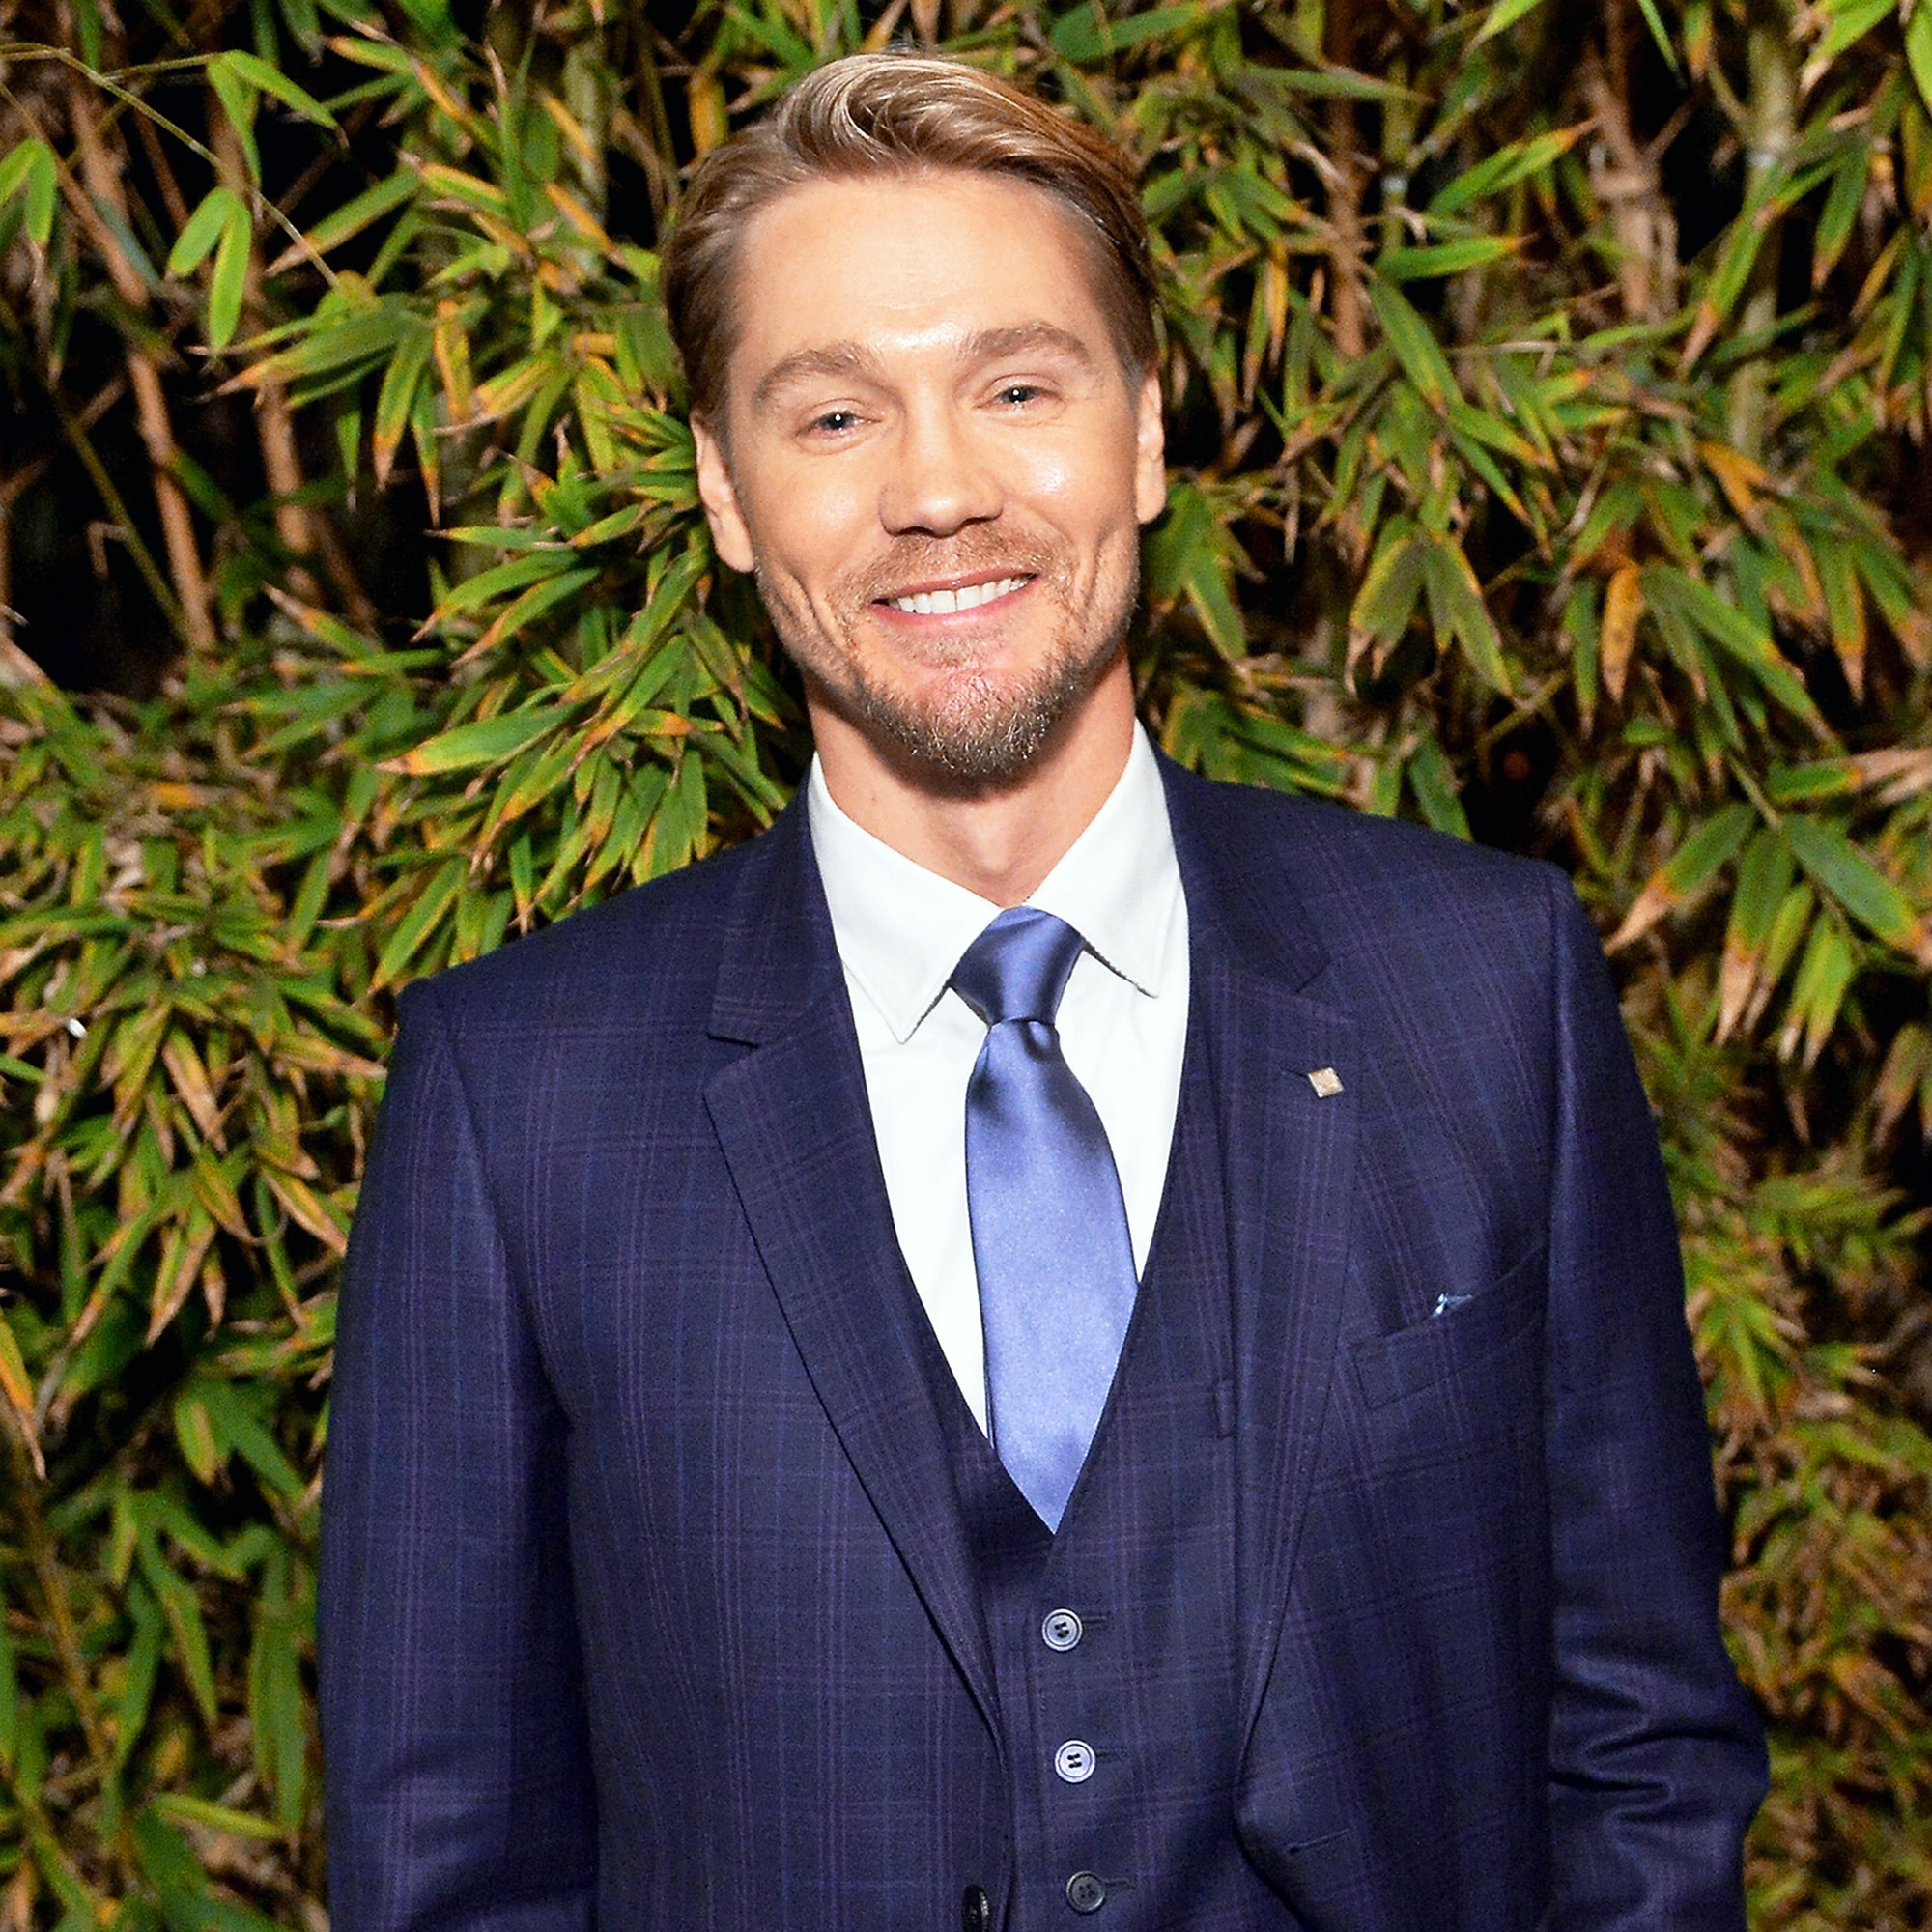 Chad Michael Murray attends the 2016 GQ Men of the Year Party at Chateau Marmont in Los Angeles, California.